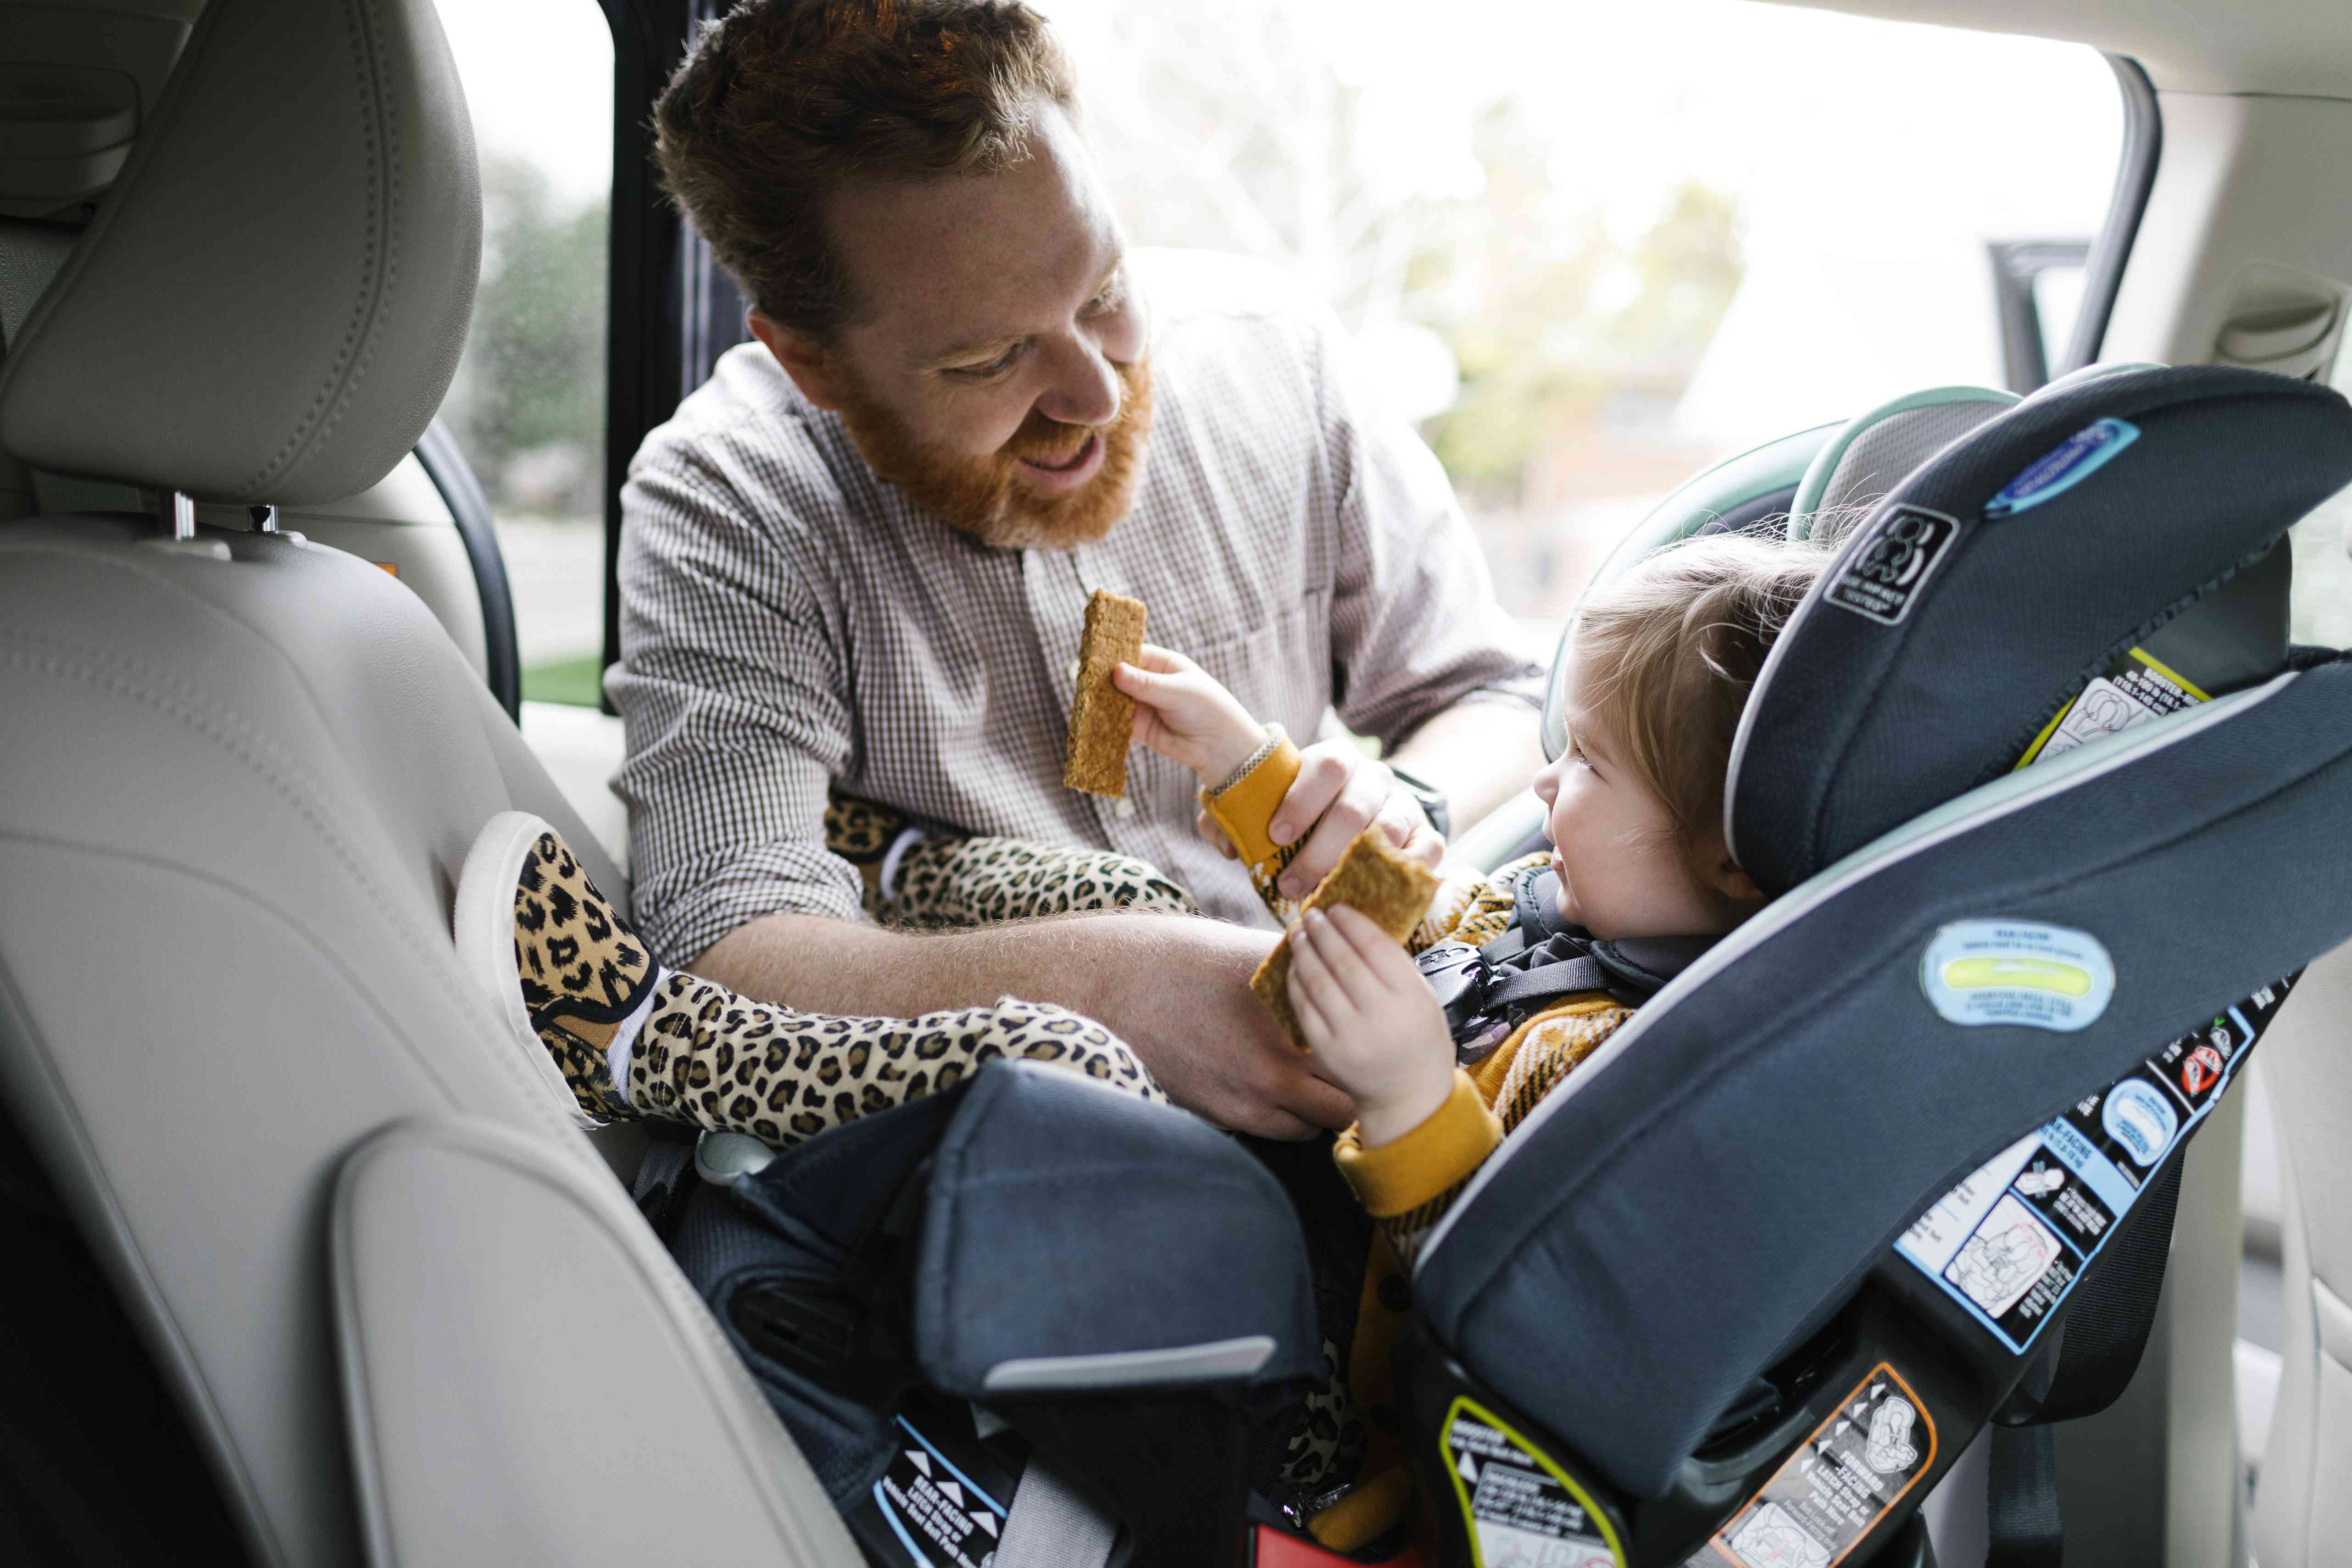 Father buckling toddler in car seat with a snack